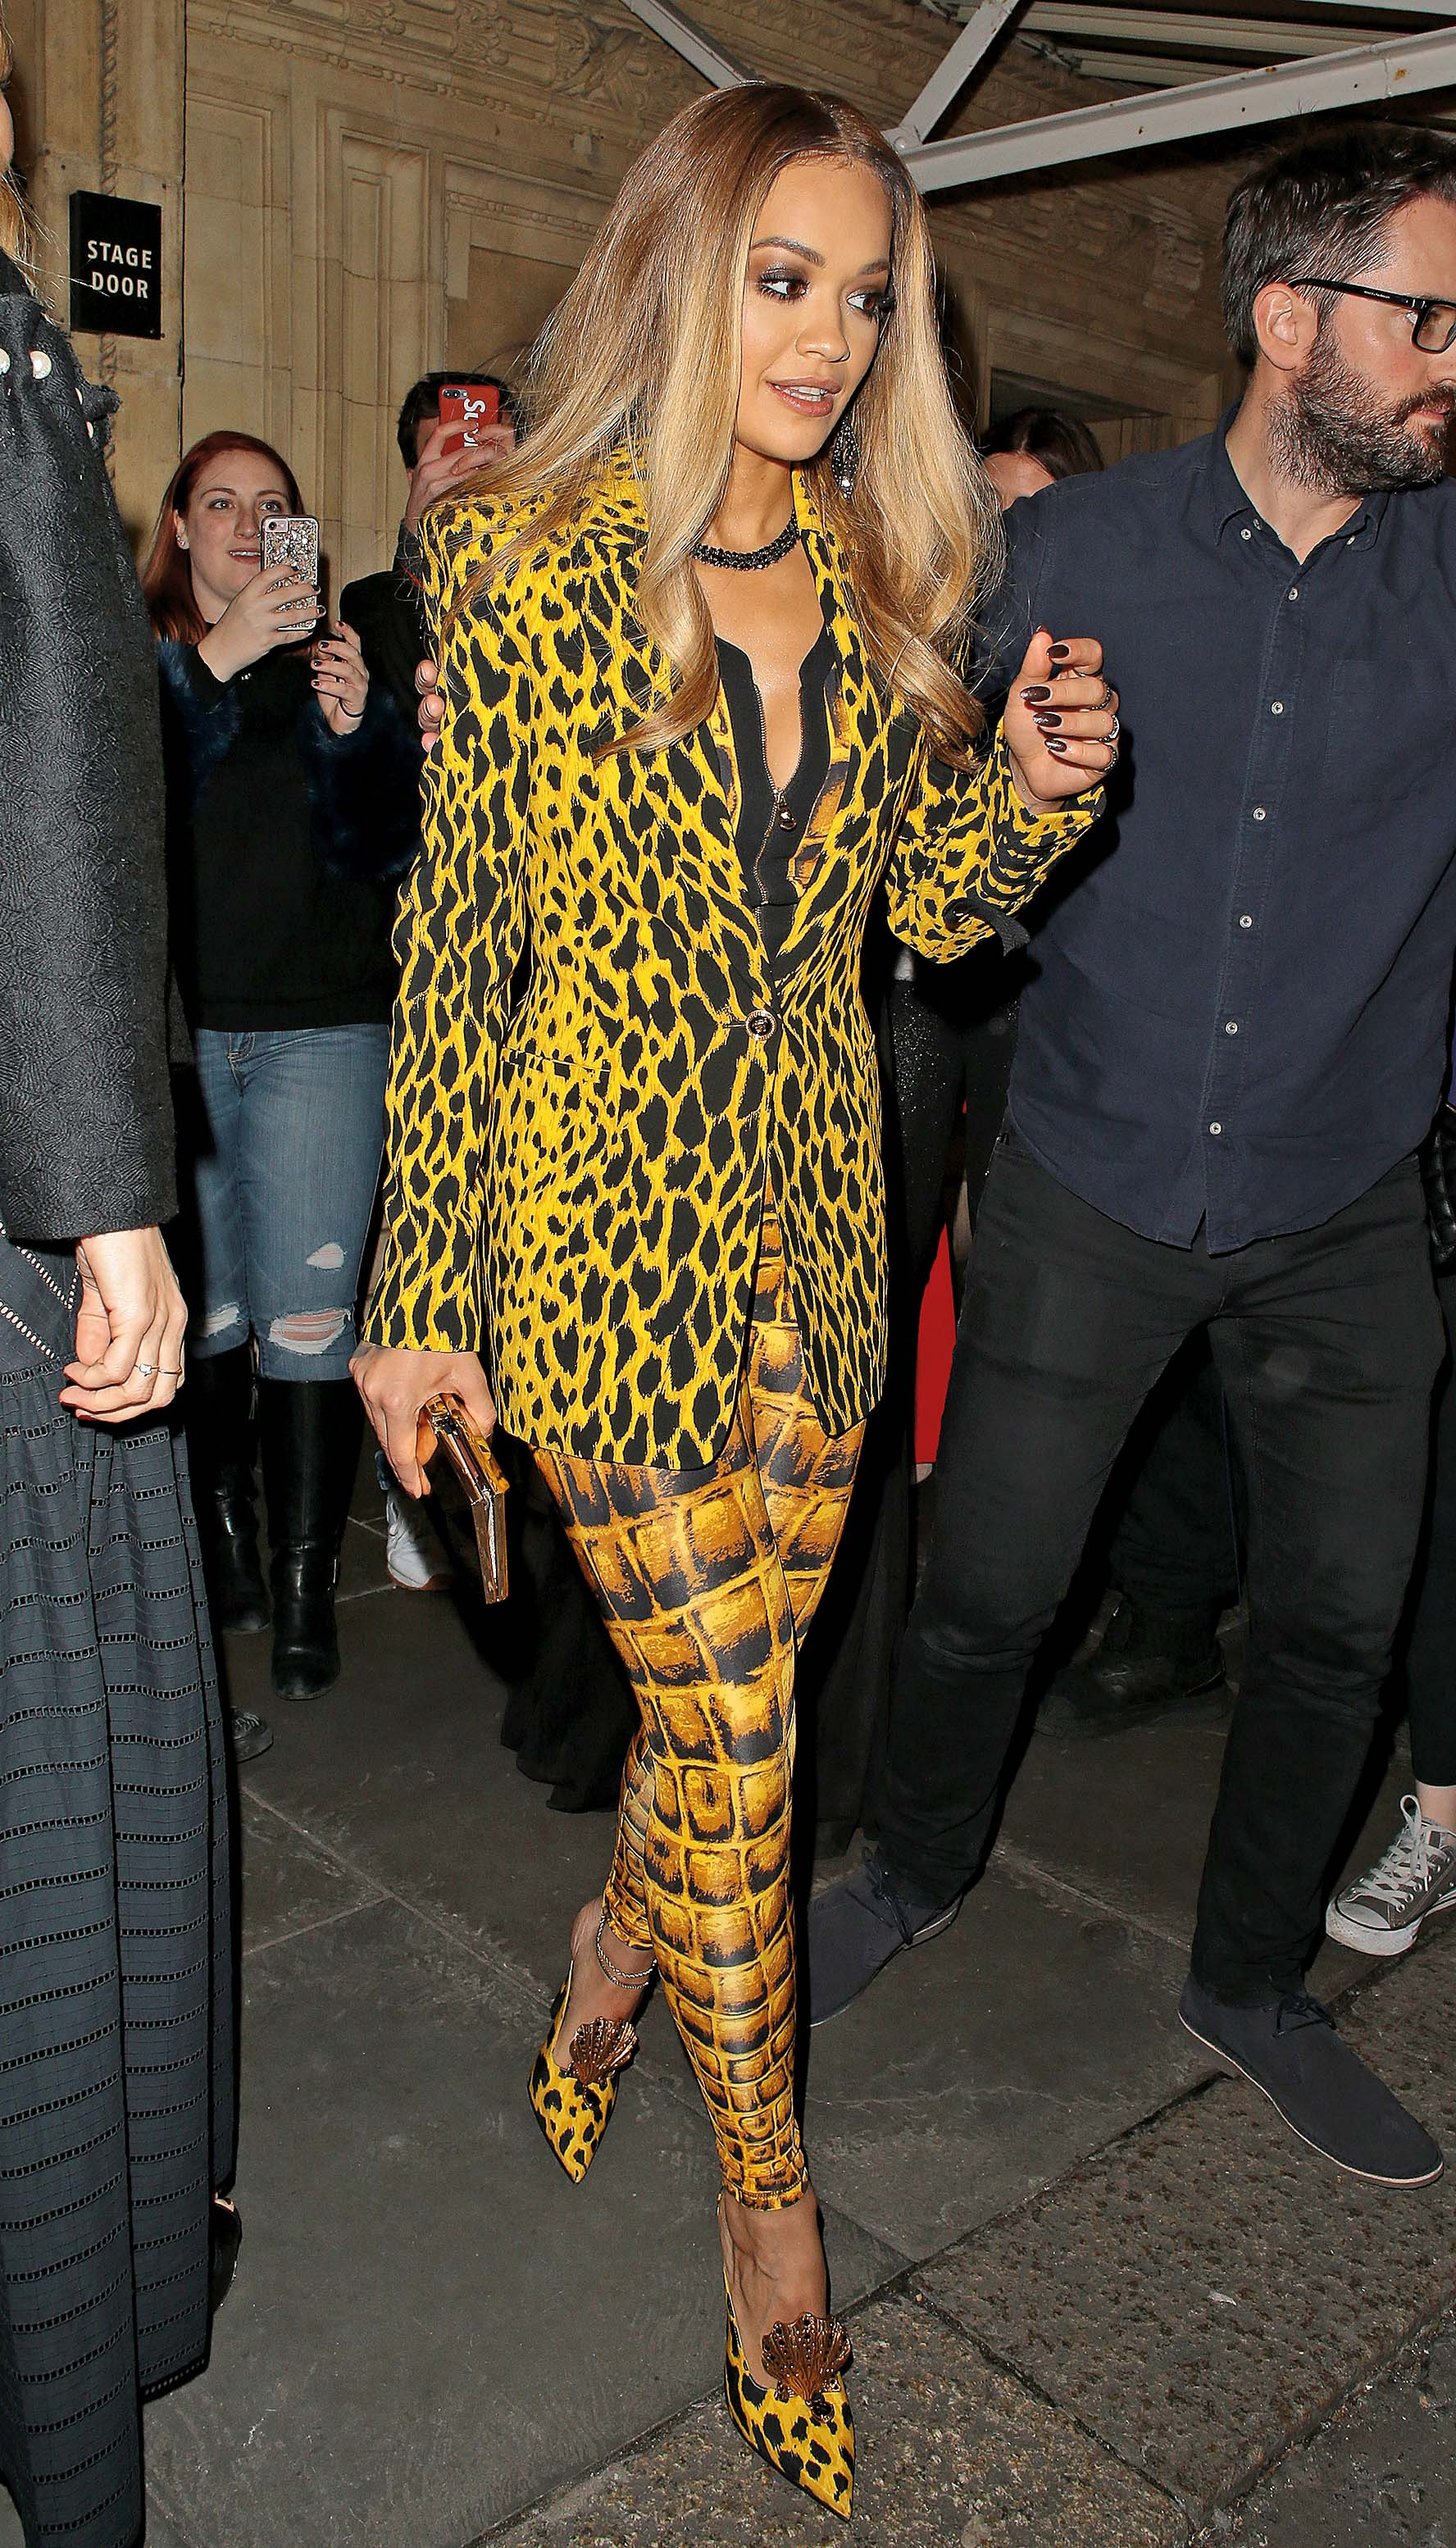 LONDON, ENGLAND - DECEMBER 04:  Rita Ora seen leaving The Fashion Awards 2017 held at Royal Albert Hall on December 4, 2017 in London, England.  (Photo by Ricky Vigil M/GC Images)